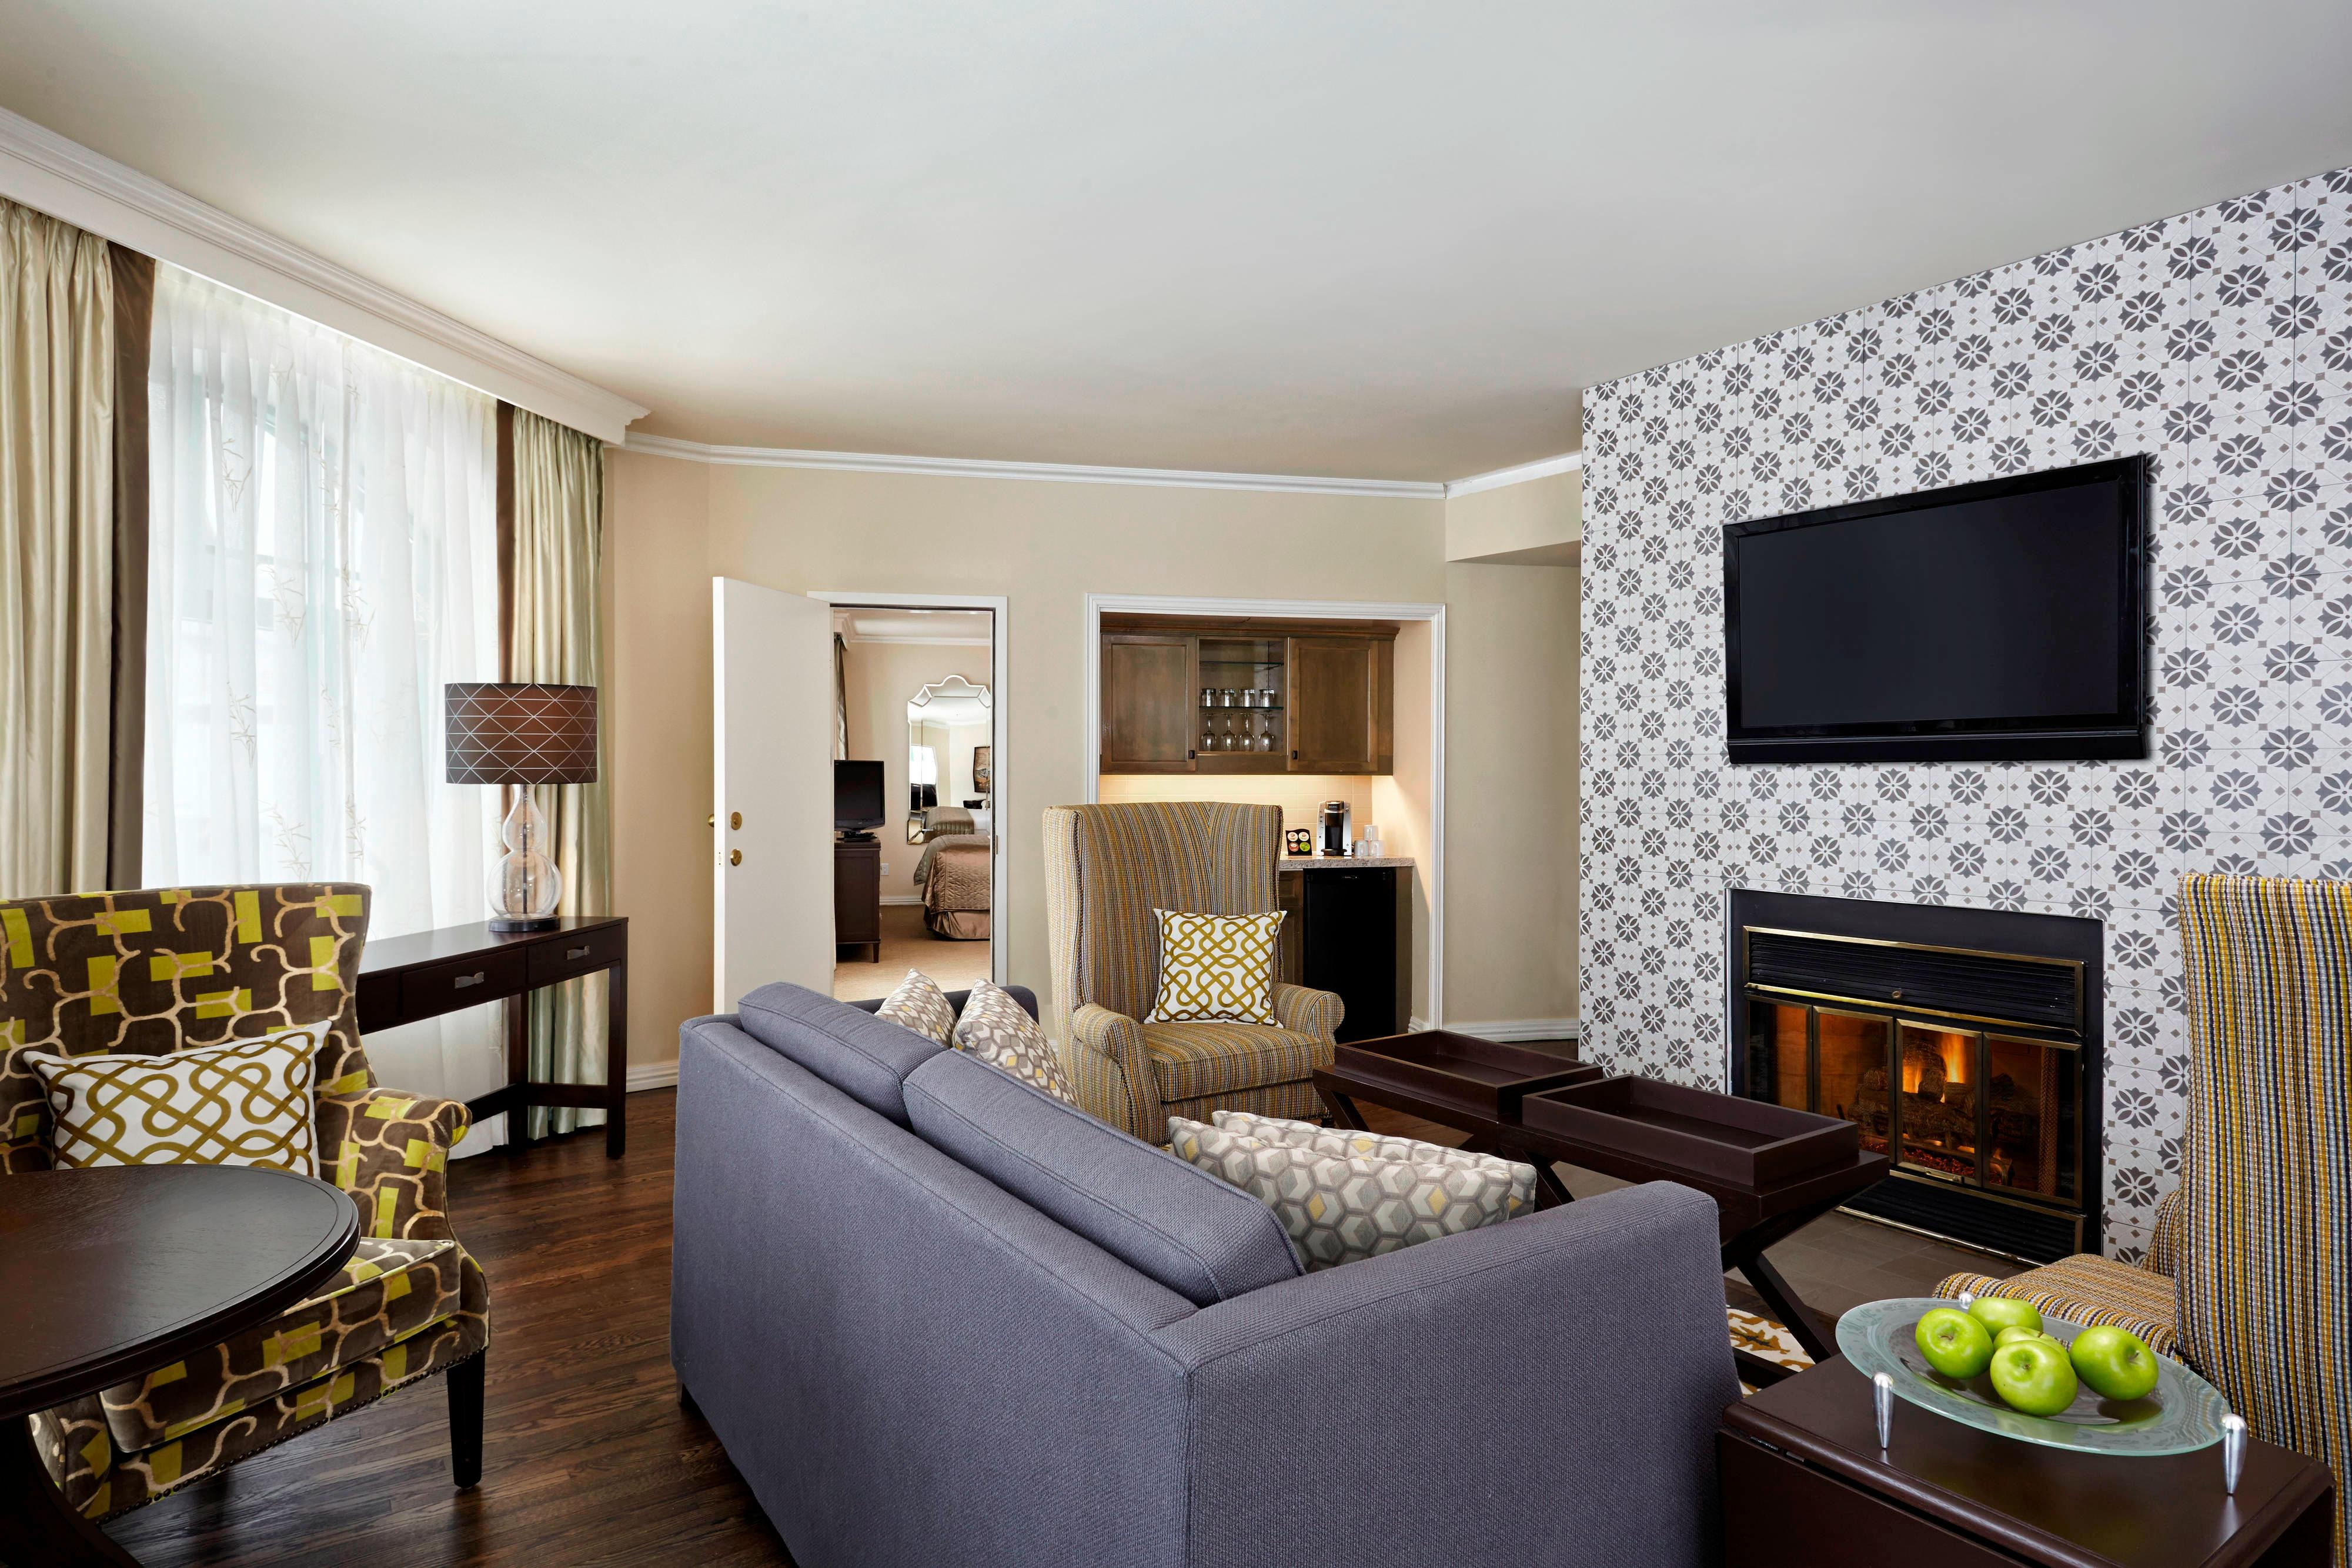 St Andrews Hotel Rooms And Suites The Algonquin Resort